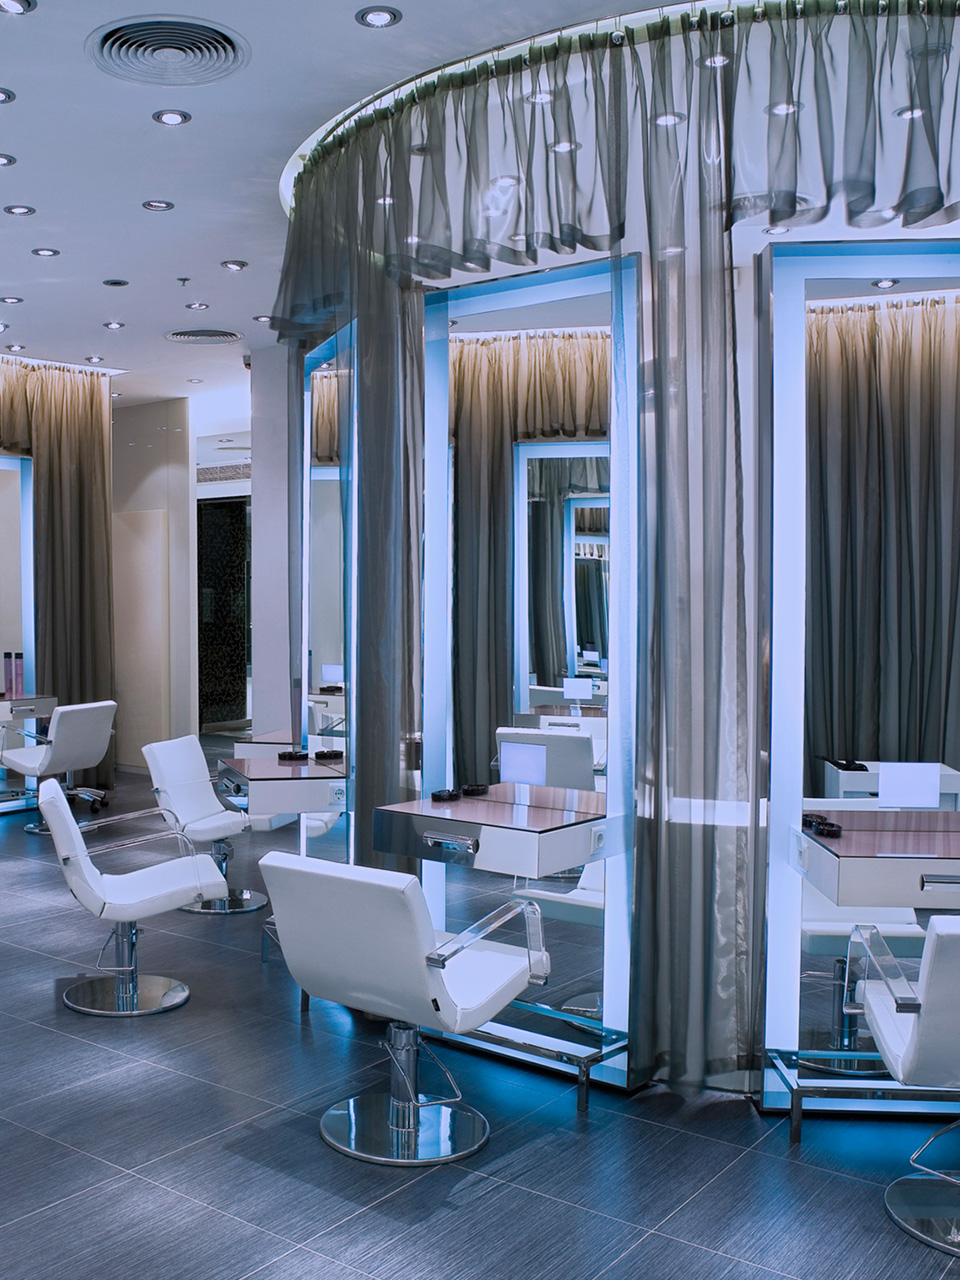 Unique Design Ideas for Beauty Salons